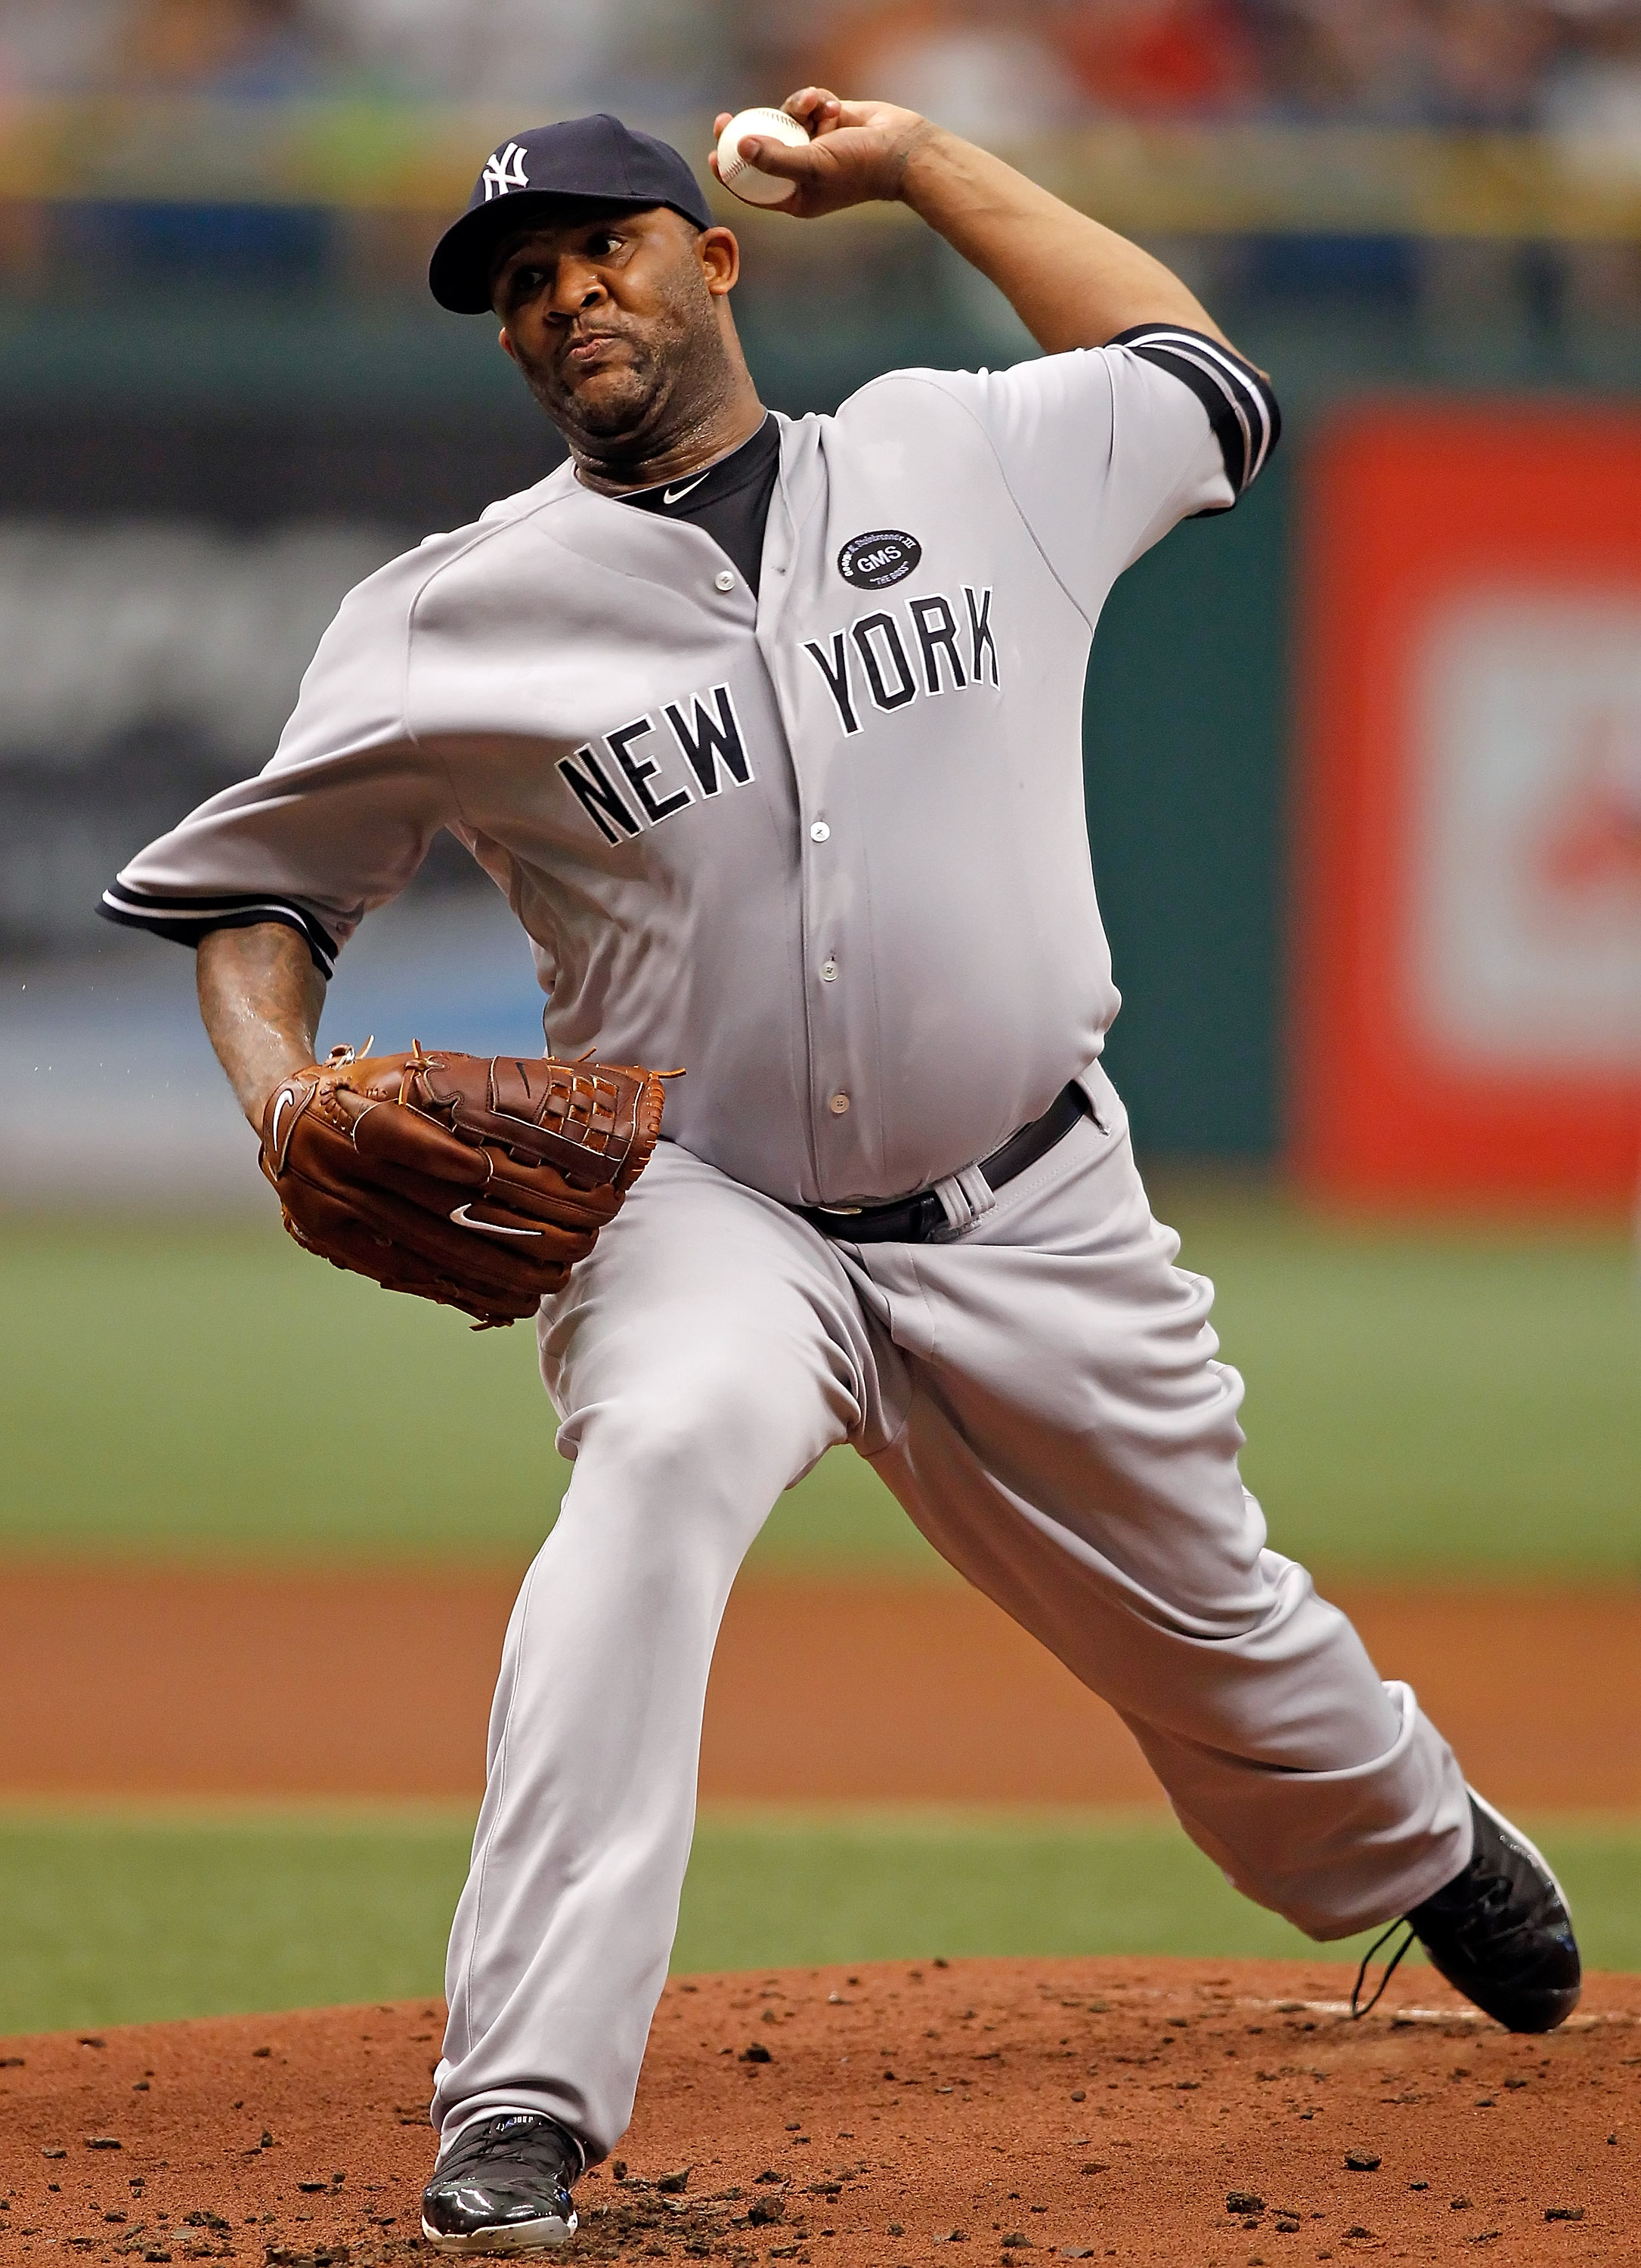 ST. PETERSBURG - AUGUST 01:  Pitcher CC Sabathia #52 of the New York Yankees pitches against the Tampa Bay Rays during the game at Tropicana Field on August 1, 2010 in St. Petersburg, Florida.  (Photo by J. Meric/Getty Images)